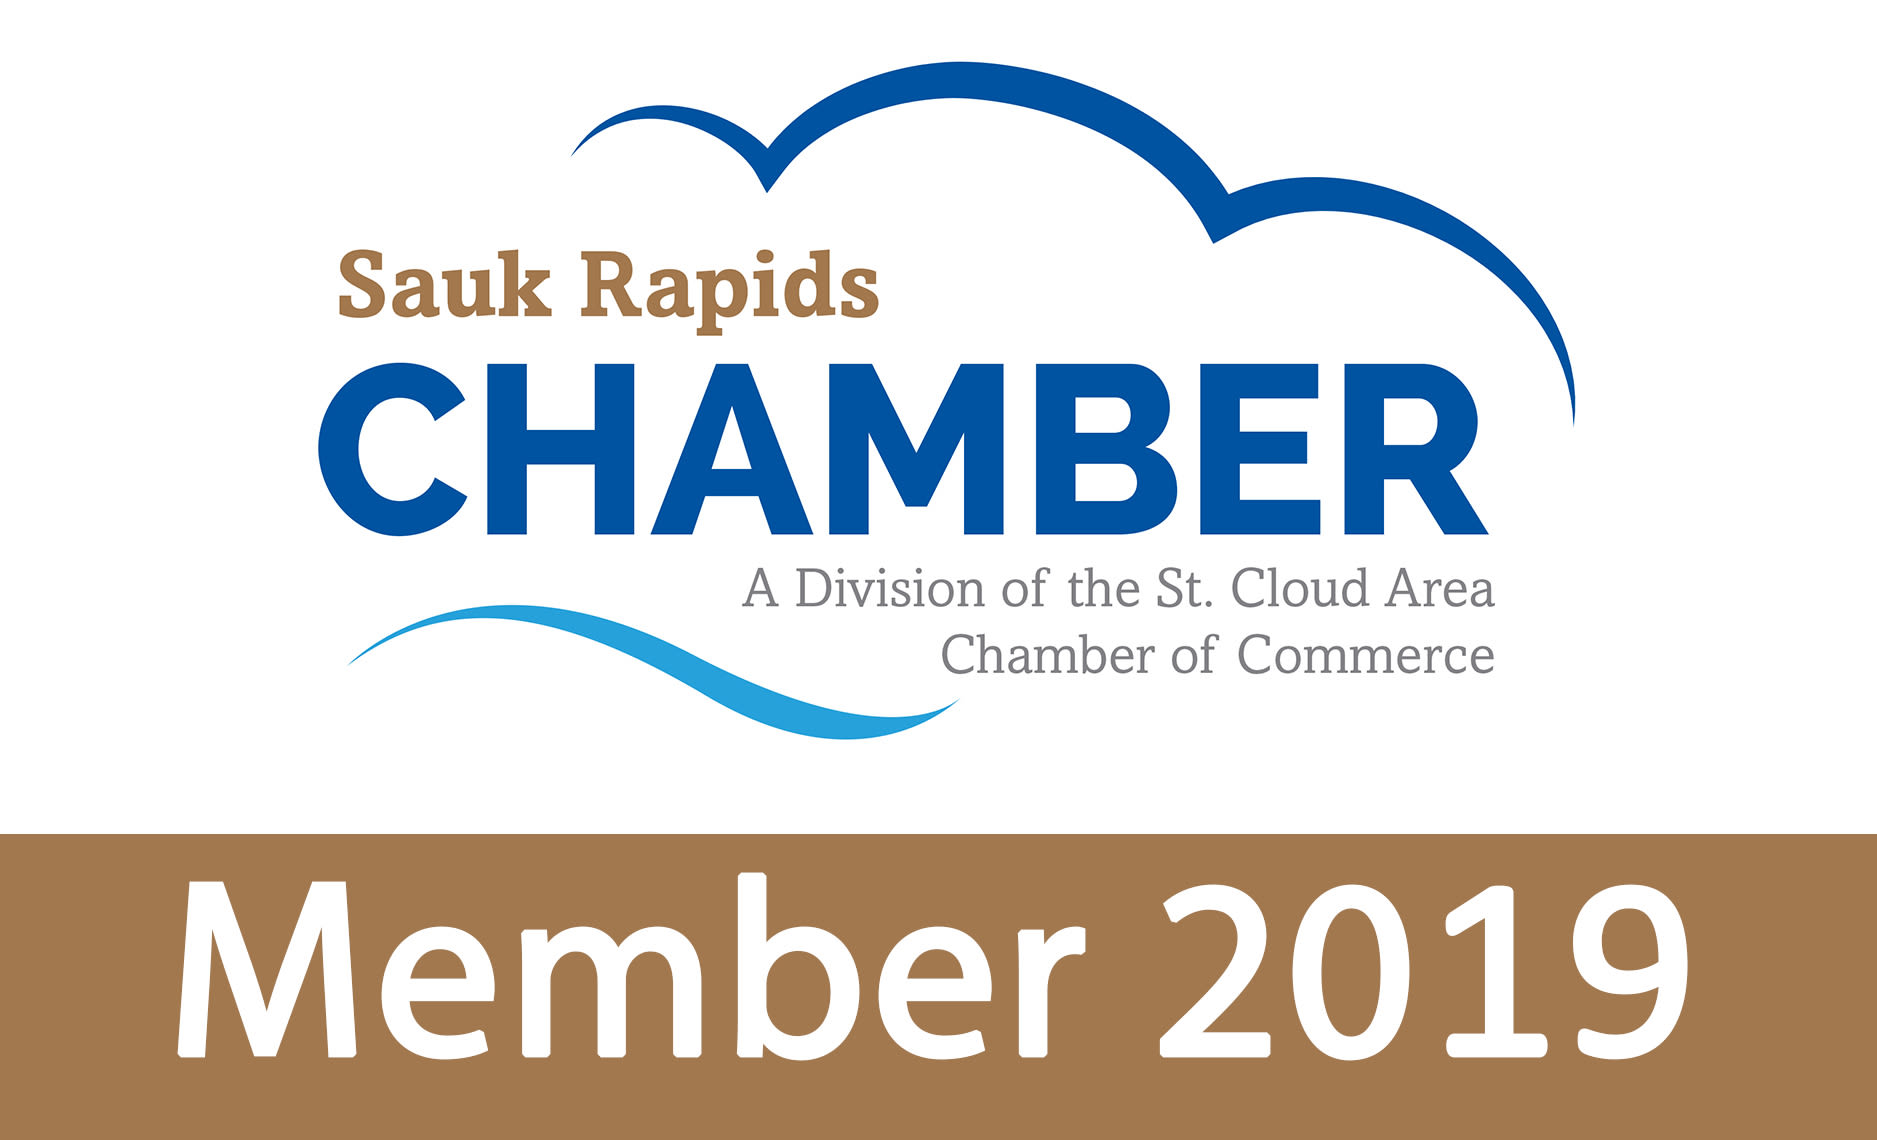 Sauk Rapids Chamber of Commerce Logo